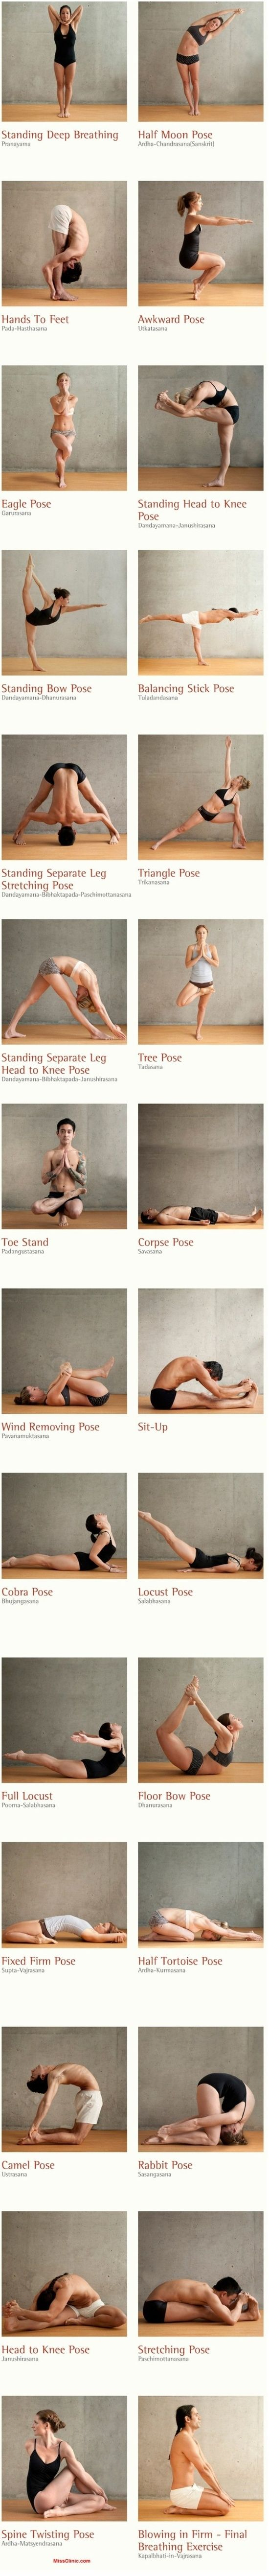 BIKRAM, 26 postures. Consisting of 26 postures and 2 breathing exercises, Bikram Yoga positions focuses on 100% of the human body, working from the inside out. The 26 Bikram yoga poses invigorate by stimulating the organs, glands, and nerves; each pose helping to move fresh oxygen through the body.